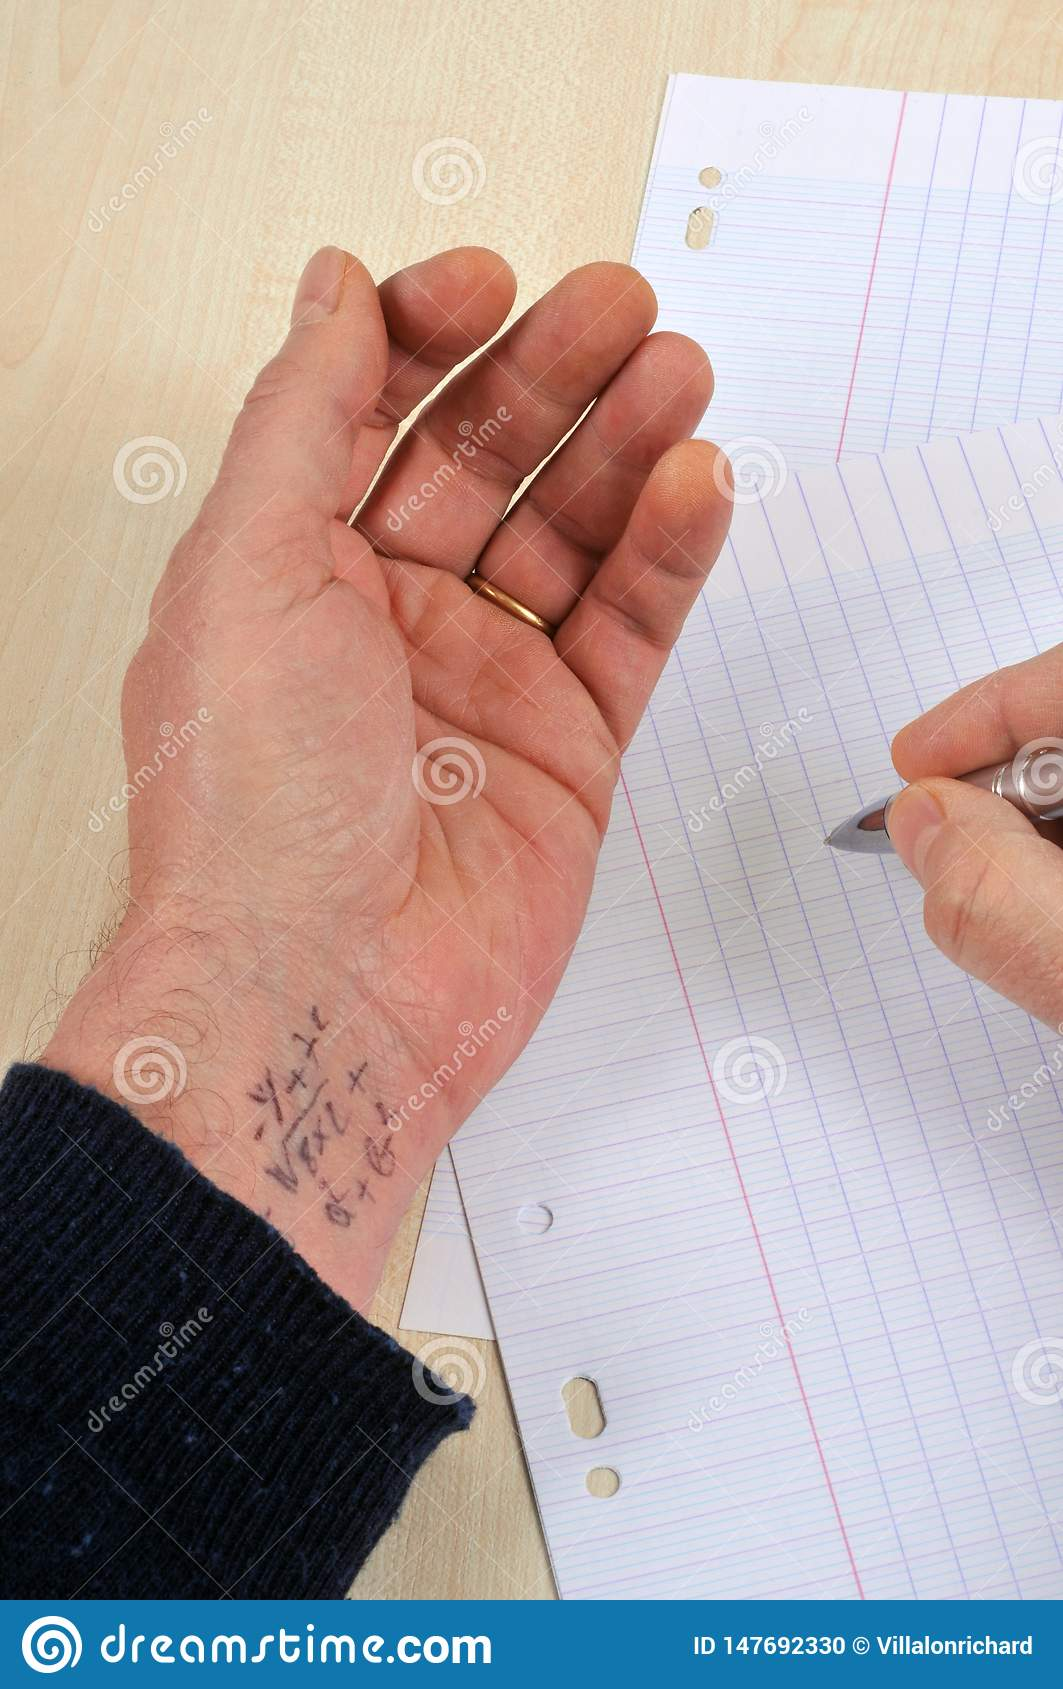 Cheating During A School Exam Stock Photo - Image of school